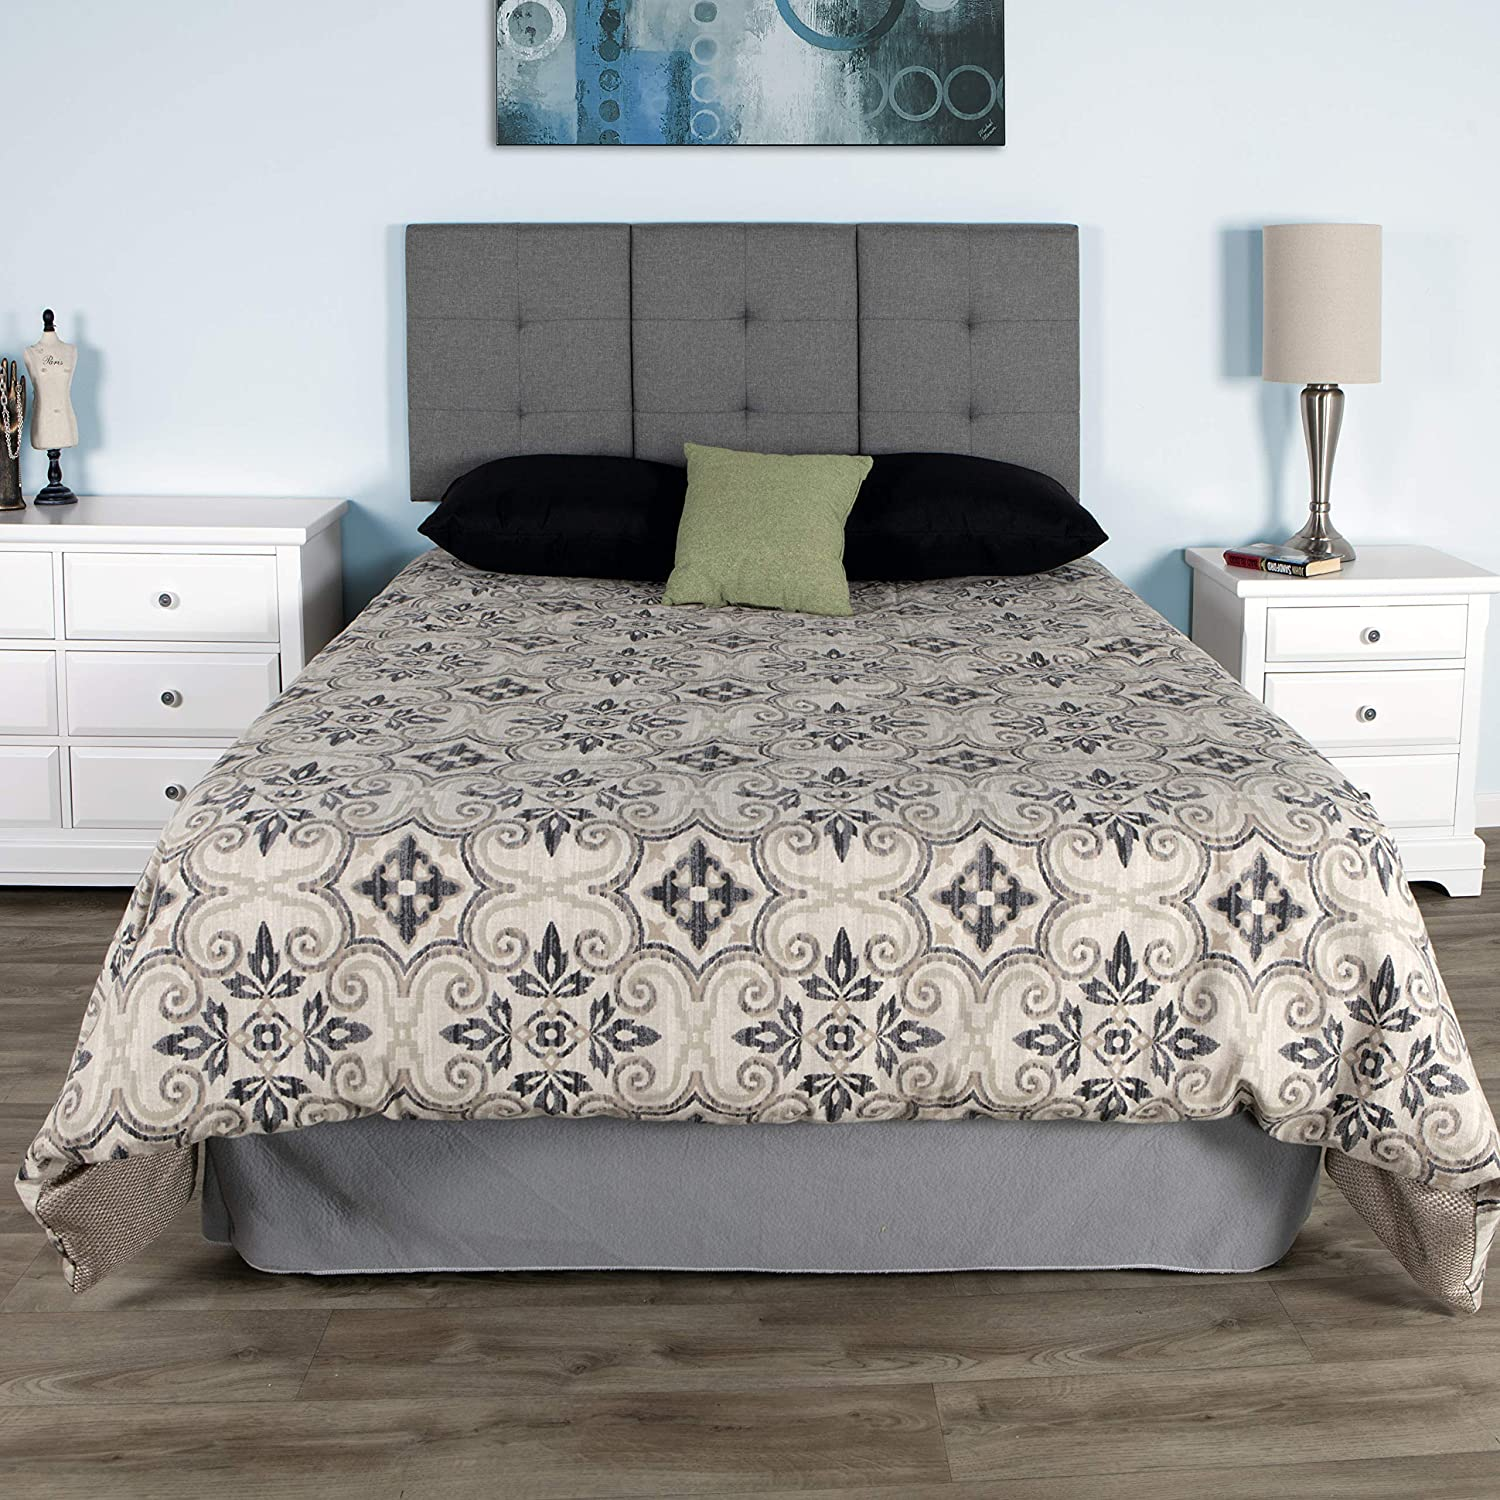 Queen//Full Platform Bed Frame Mattress Foundations Universal Fit for Air Mattresses and Box Springs: Tufted Faux Leather White Boyd Sleep Mia Upholstered Tri-Panel Adjustable Height Headboard